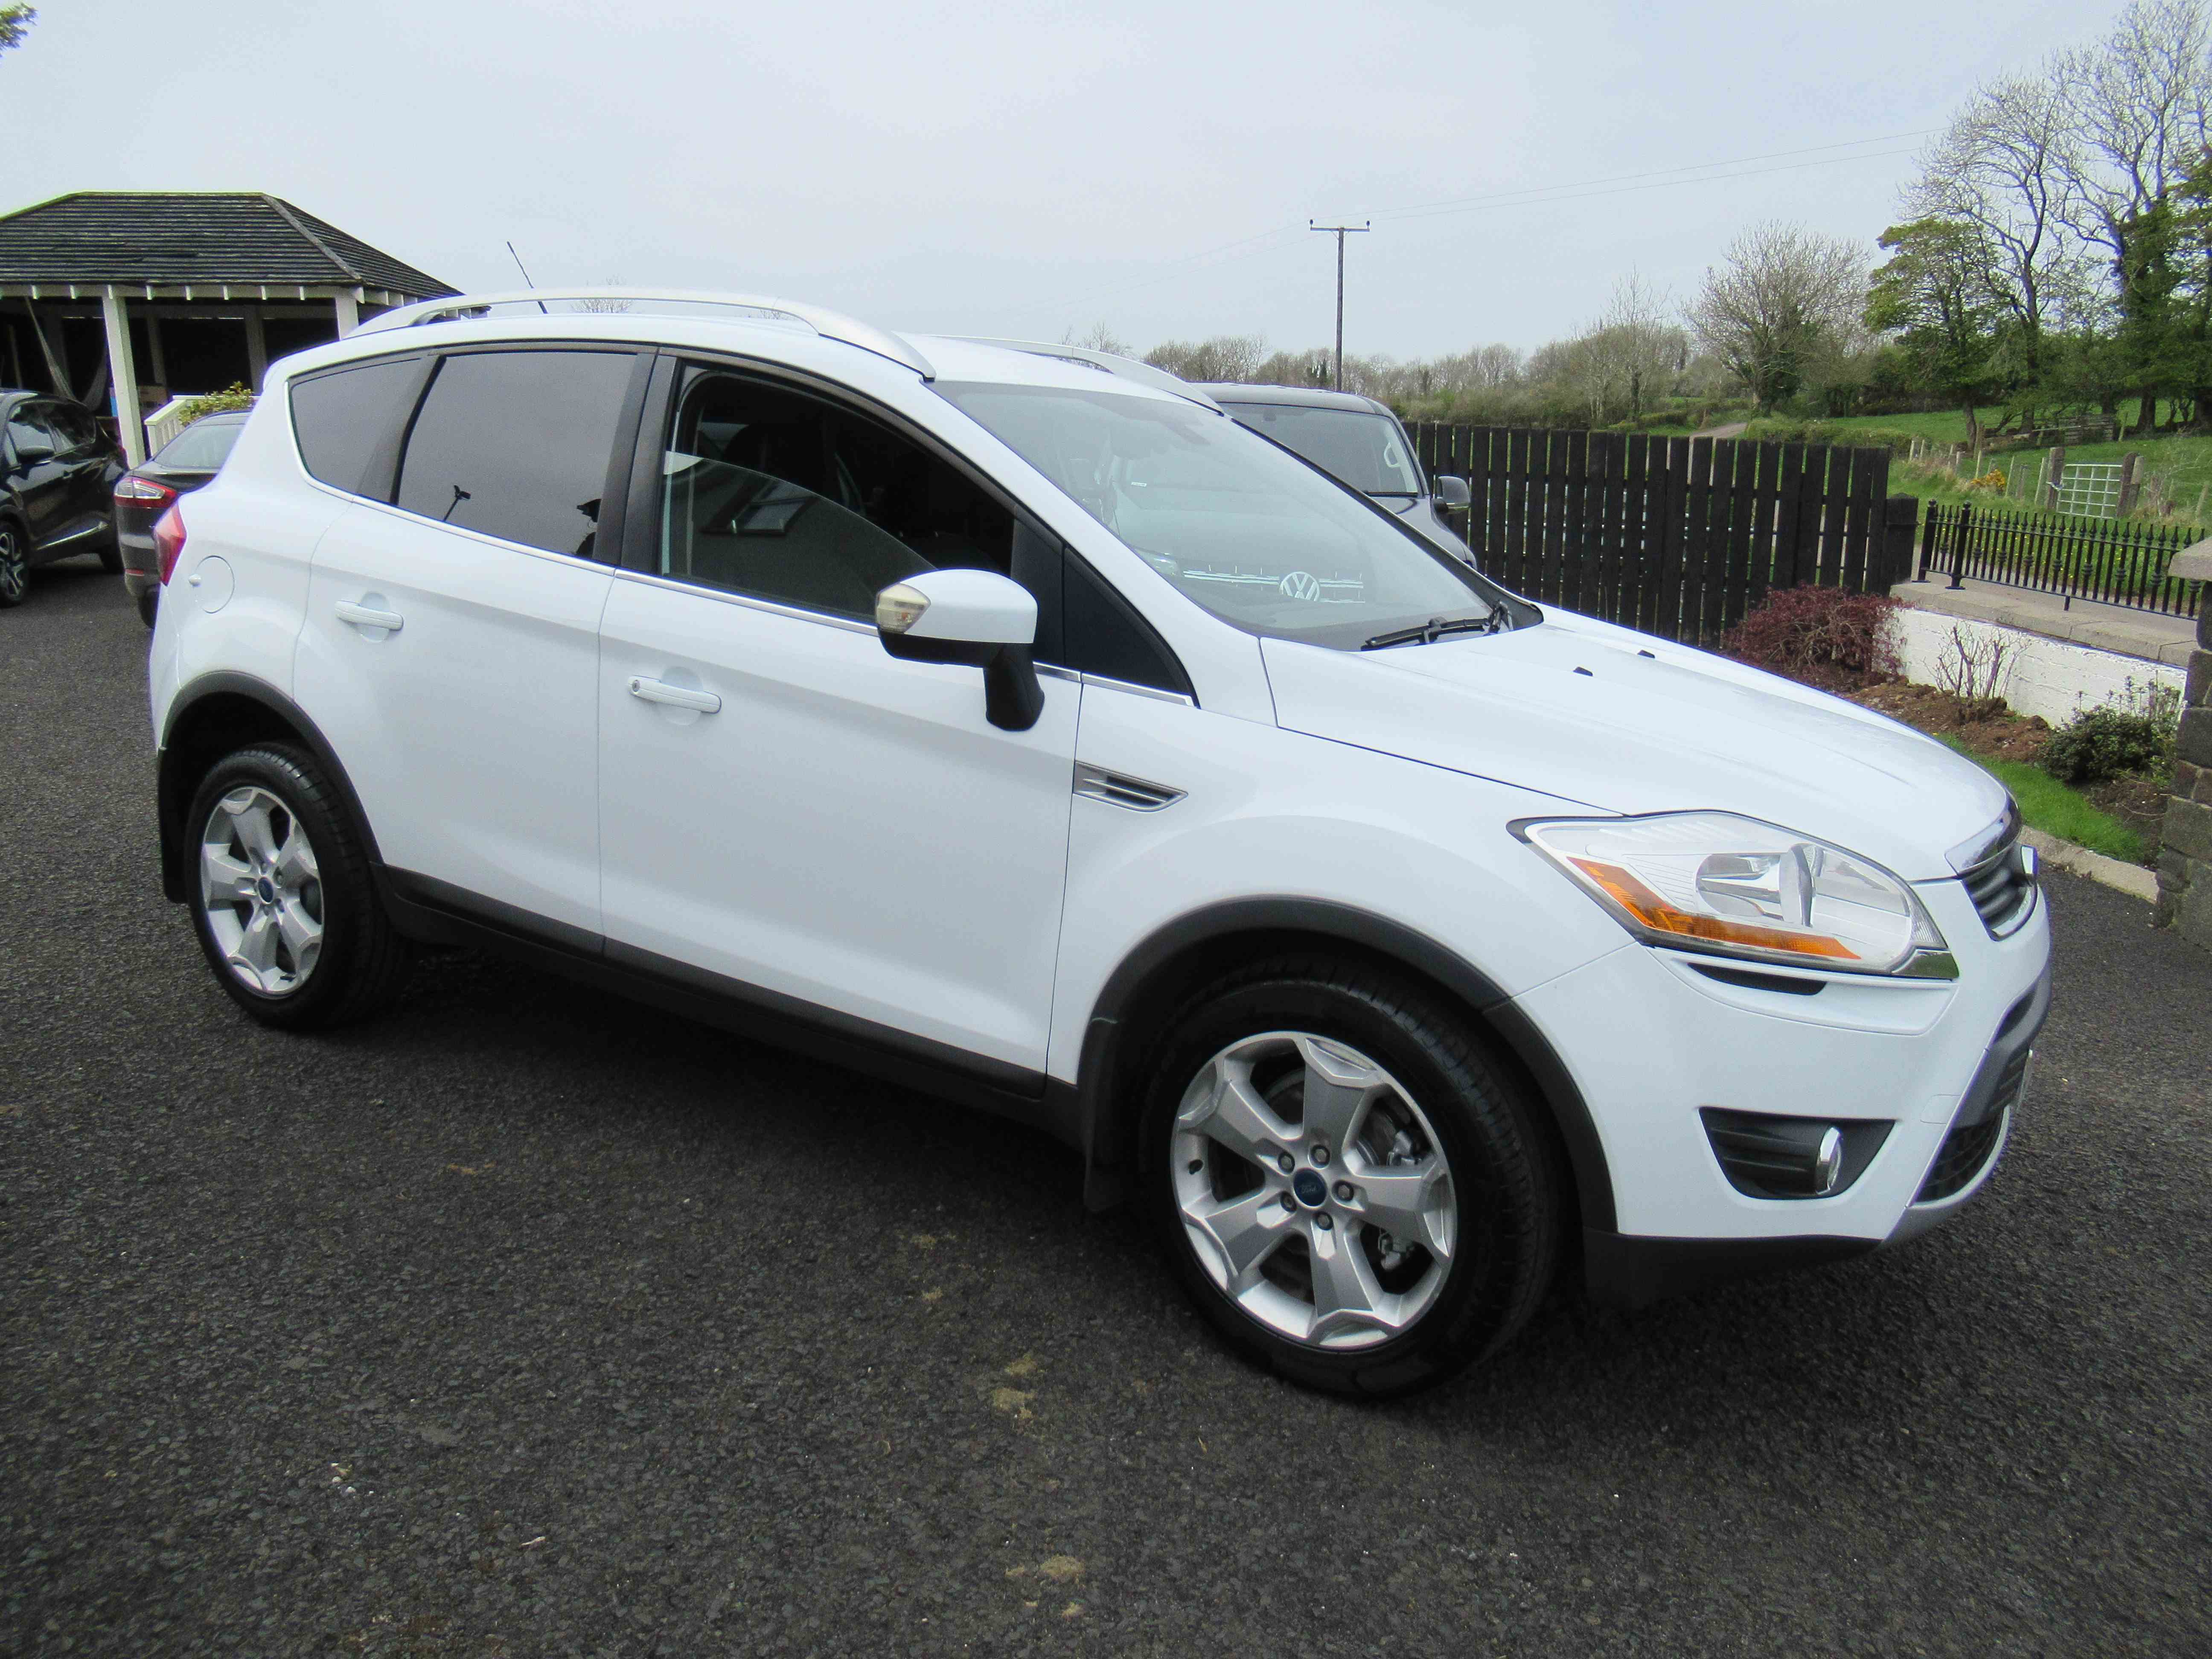 Local owner, beautiful car, Titanium Specification, Call Sean on 07970936458 or 02879401371 for more information and to arrange a test drive or delivery. Keen finance available through Motonovo, Northirdge Finance or Evolution